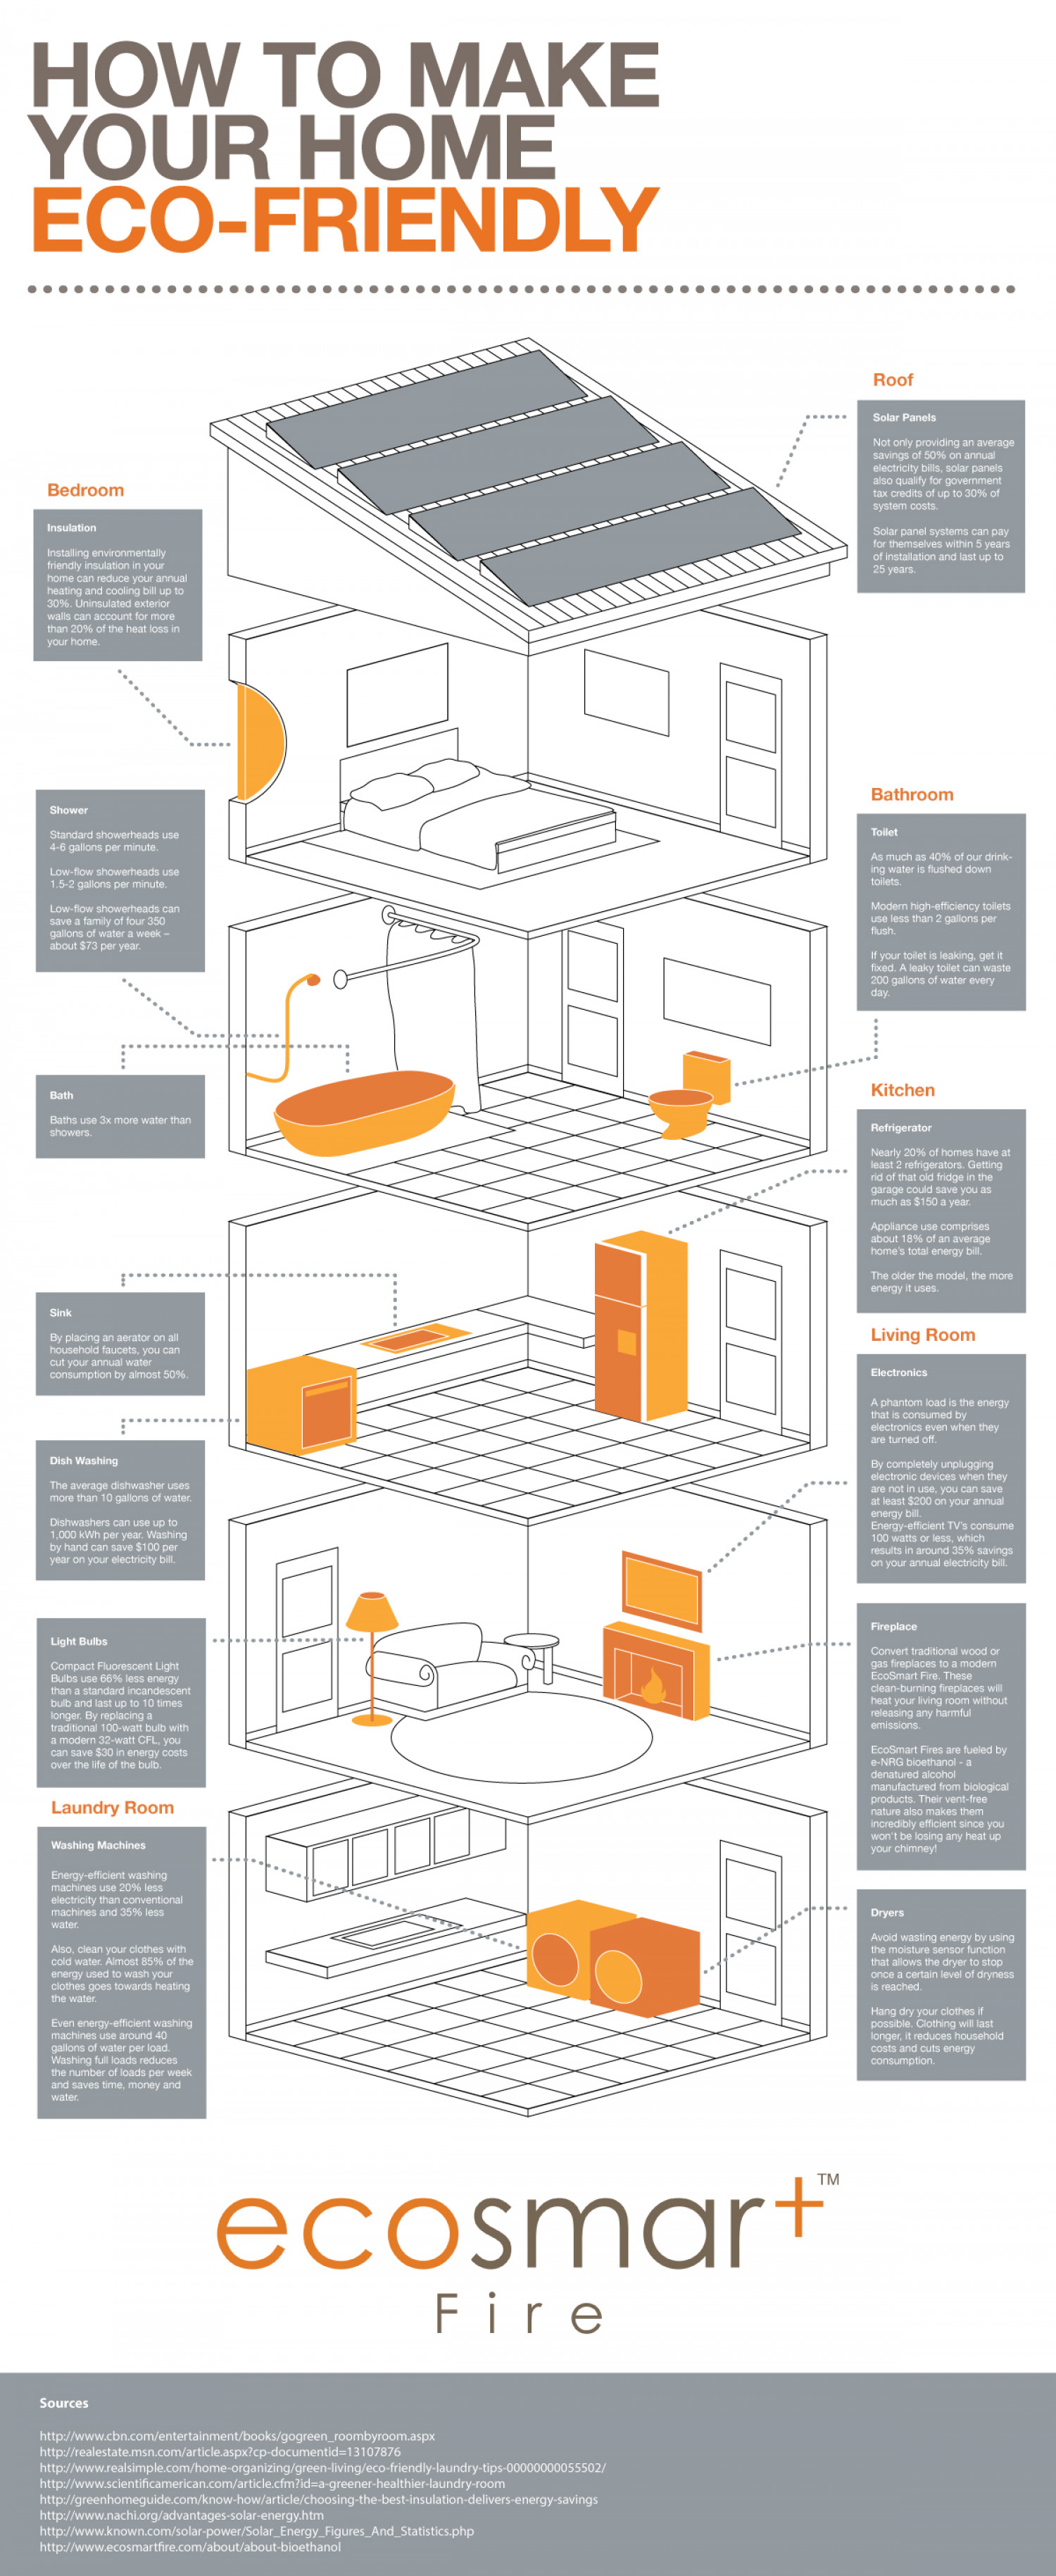 How to Make Your Home Eco-Friendly Infographic